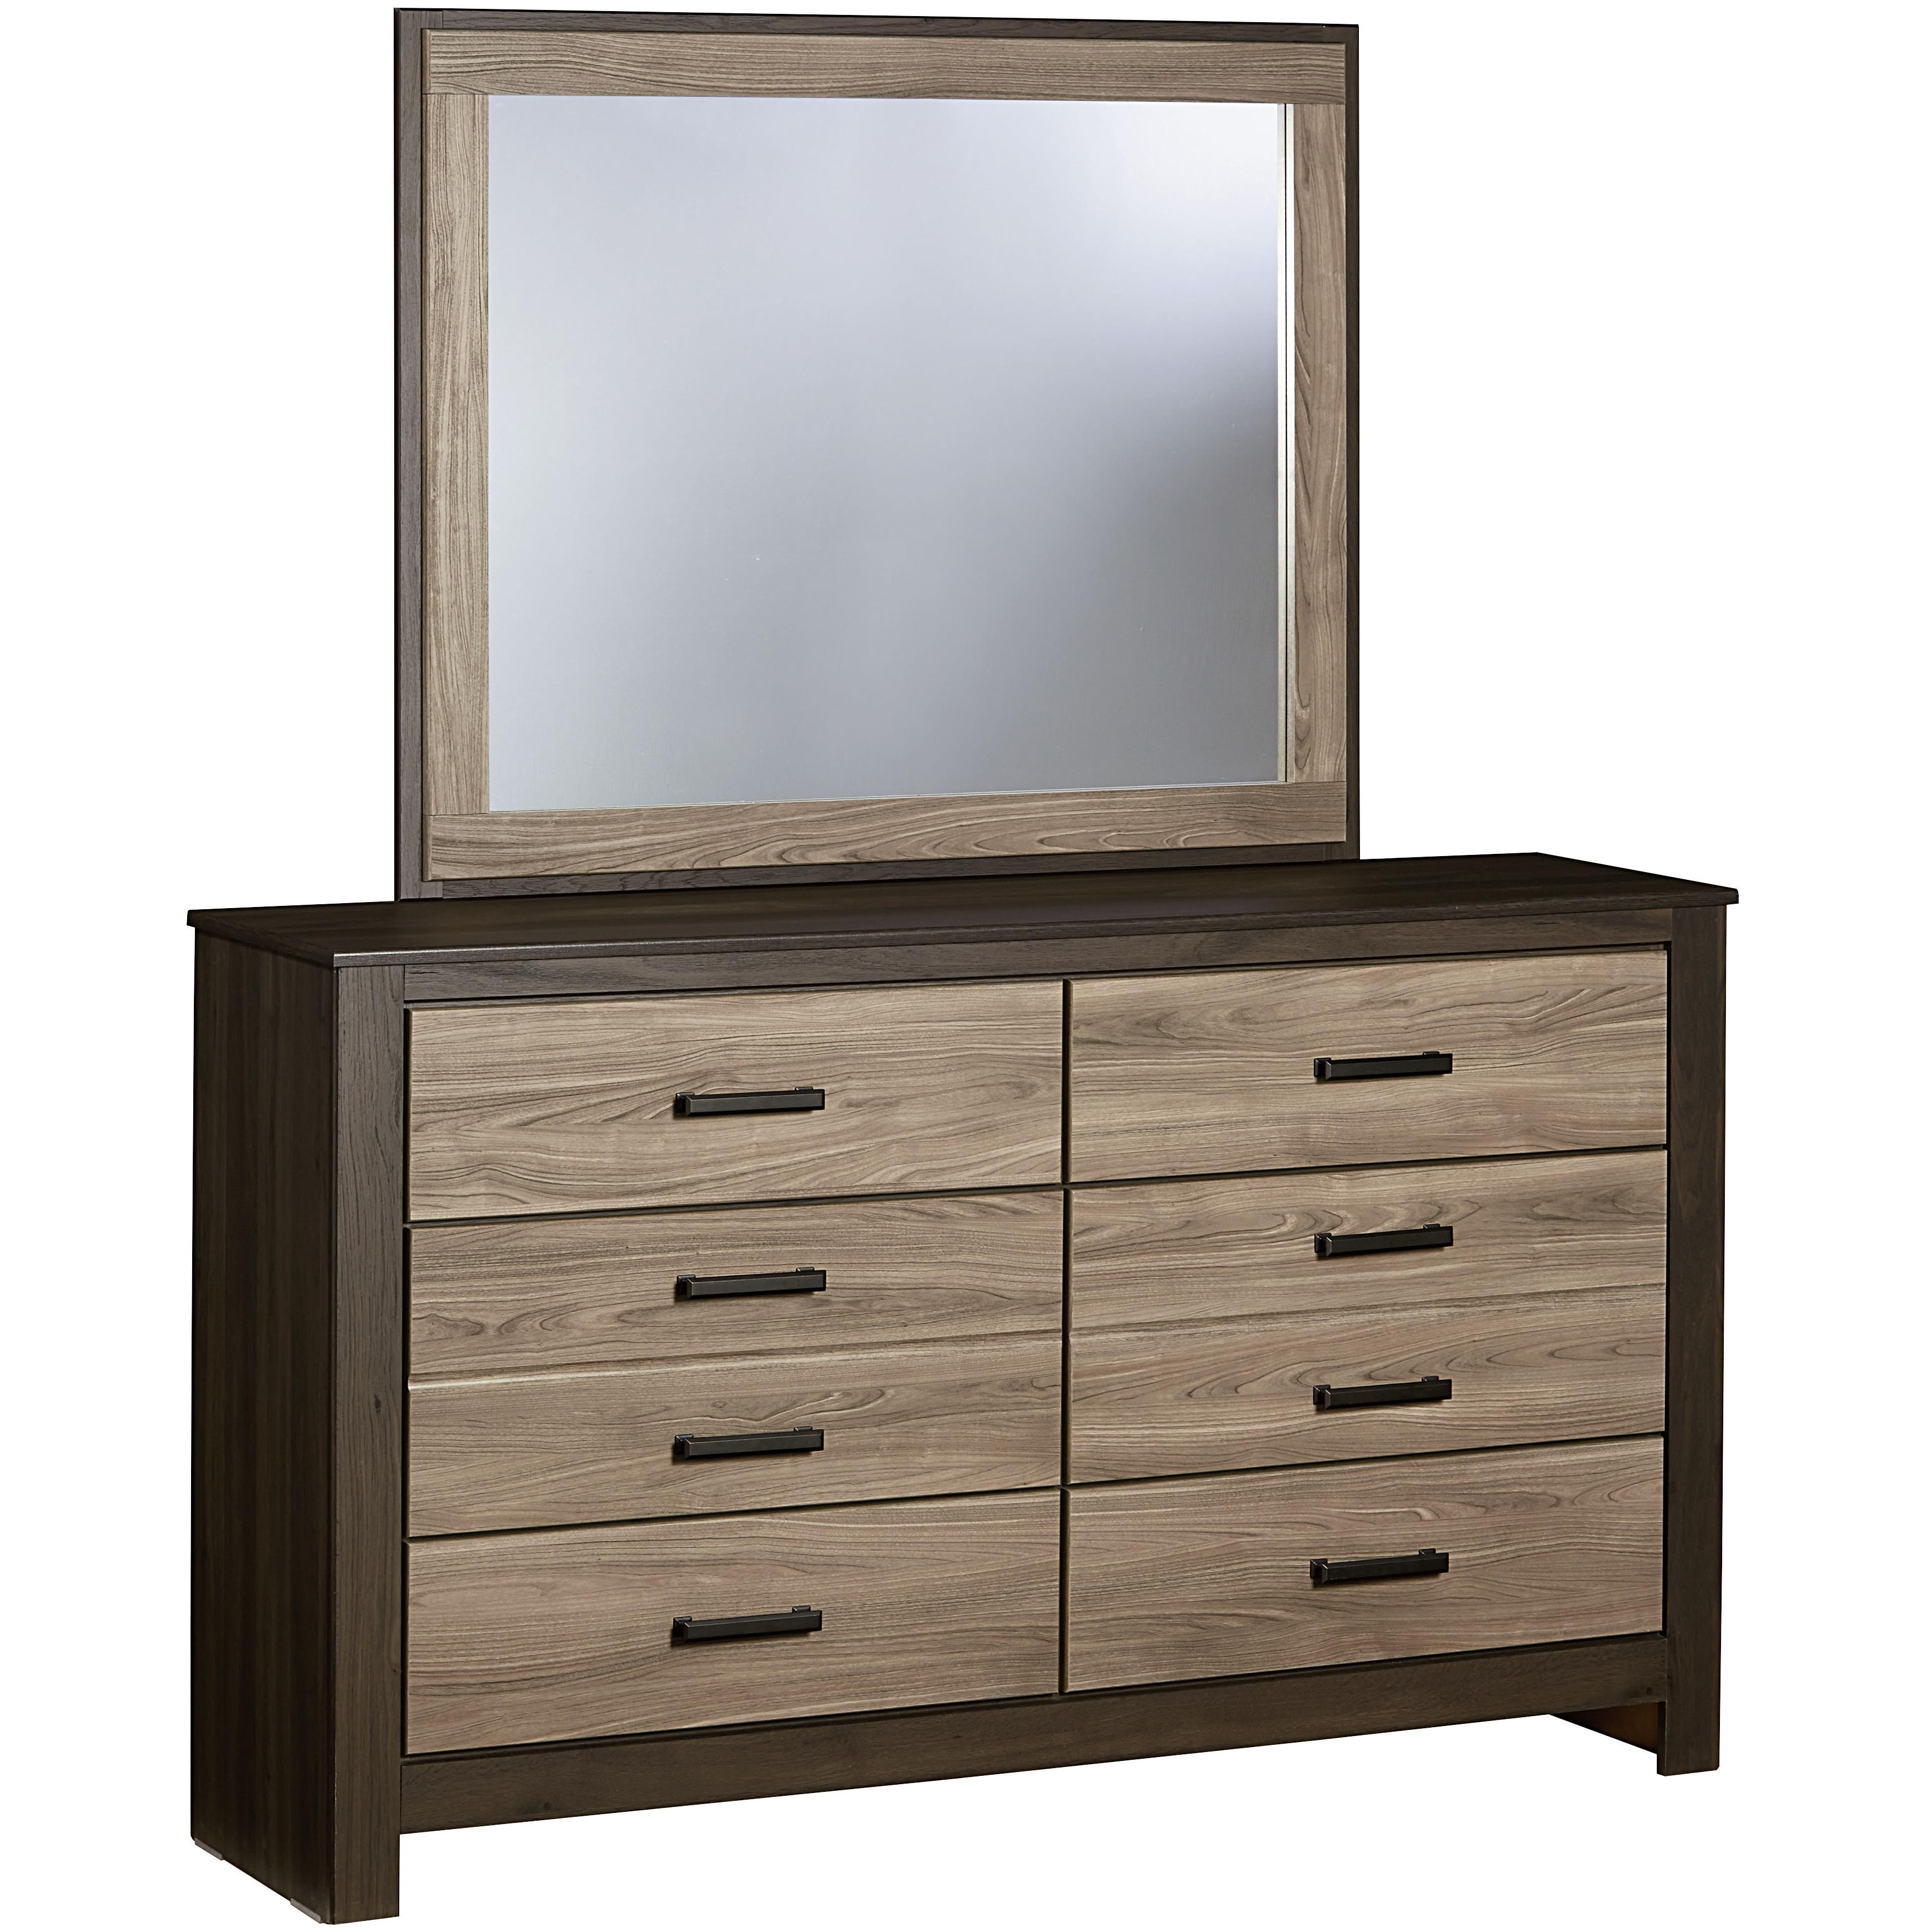 Dresser With 6 Drawers And Mirror